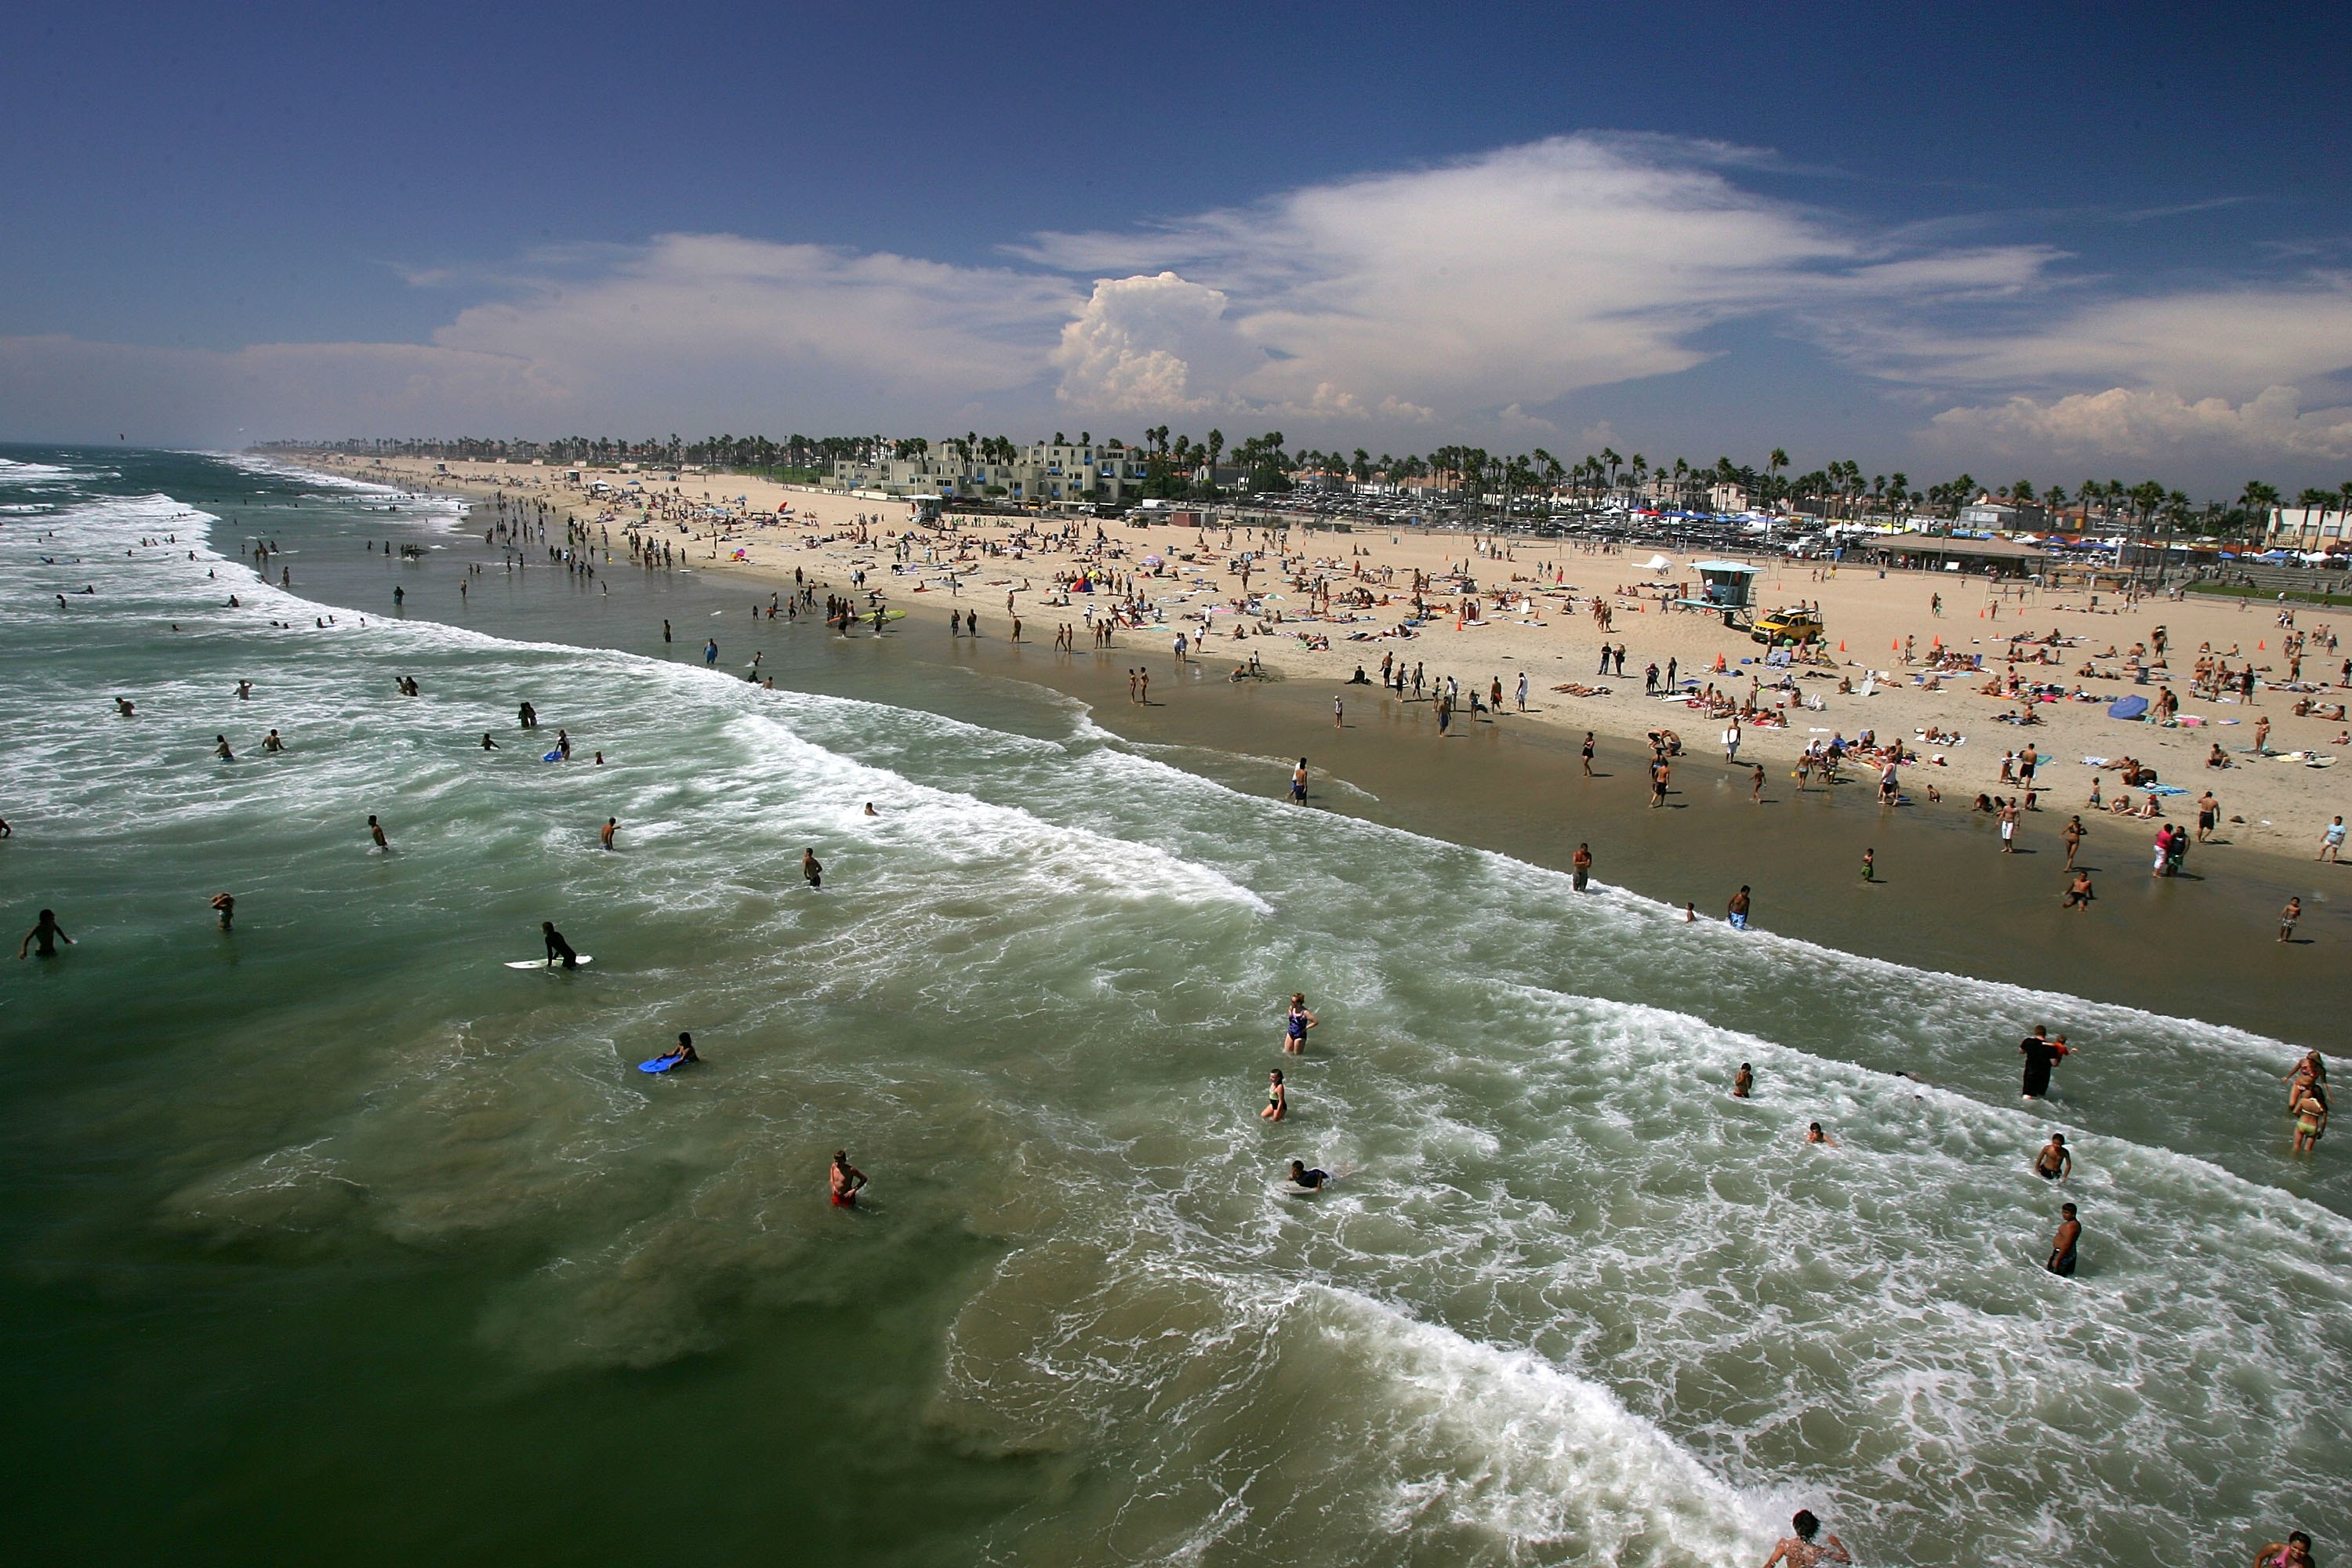 Rv Camping And State Campgrounds Near Huntington Beach California Usa Today